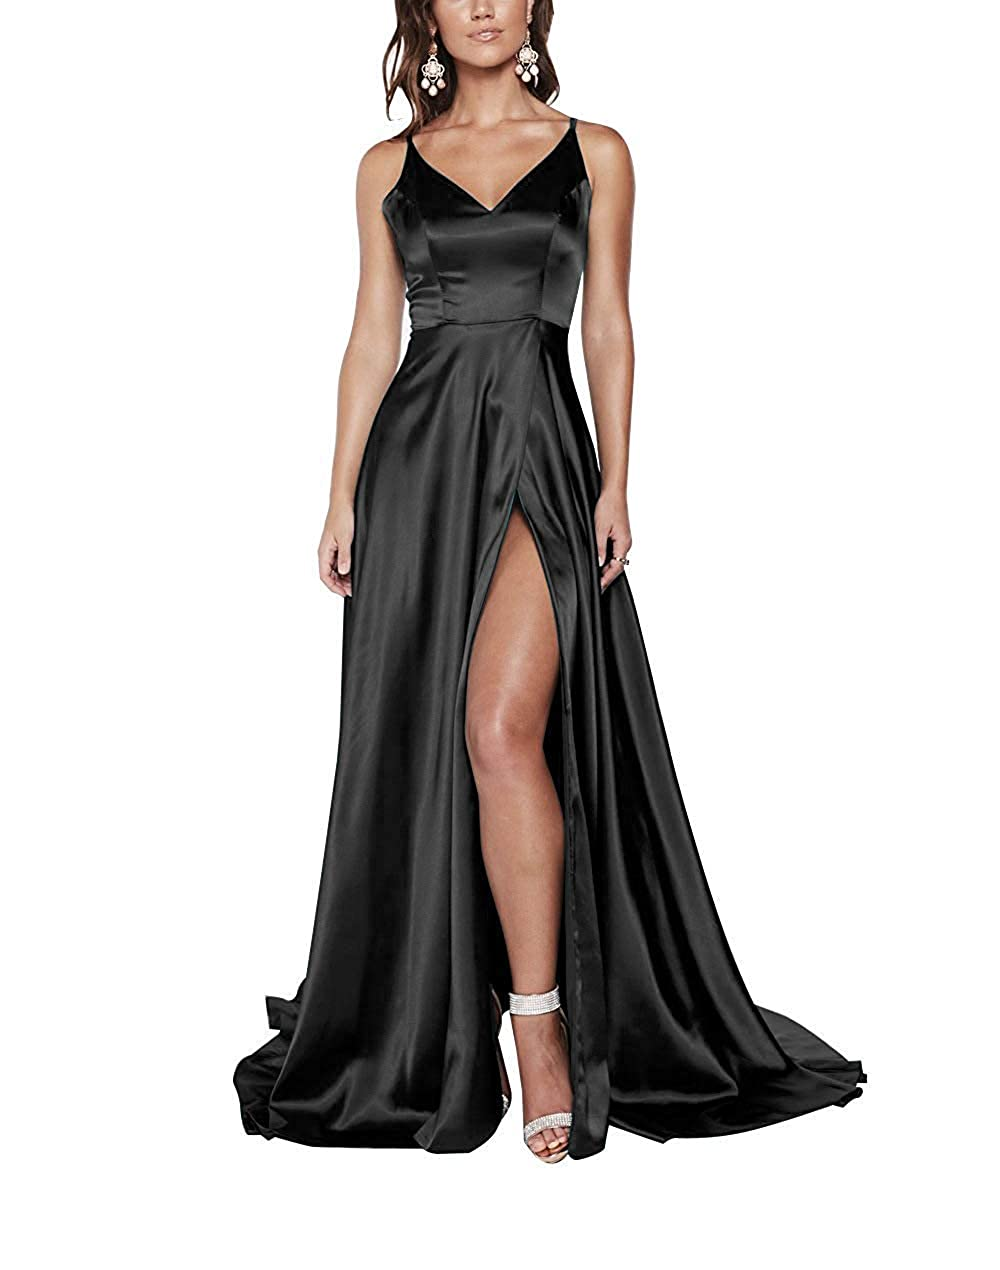 Black ASBridal Prom Dresses Evening Gowns Long Satin Prom Gown for Women Split A Line Evening Dress